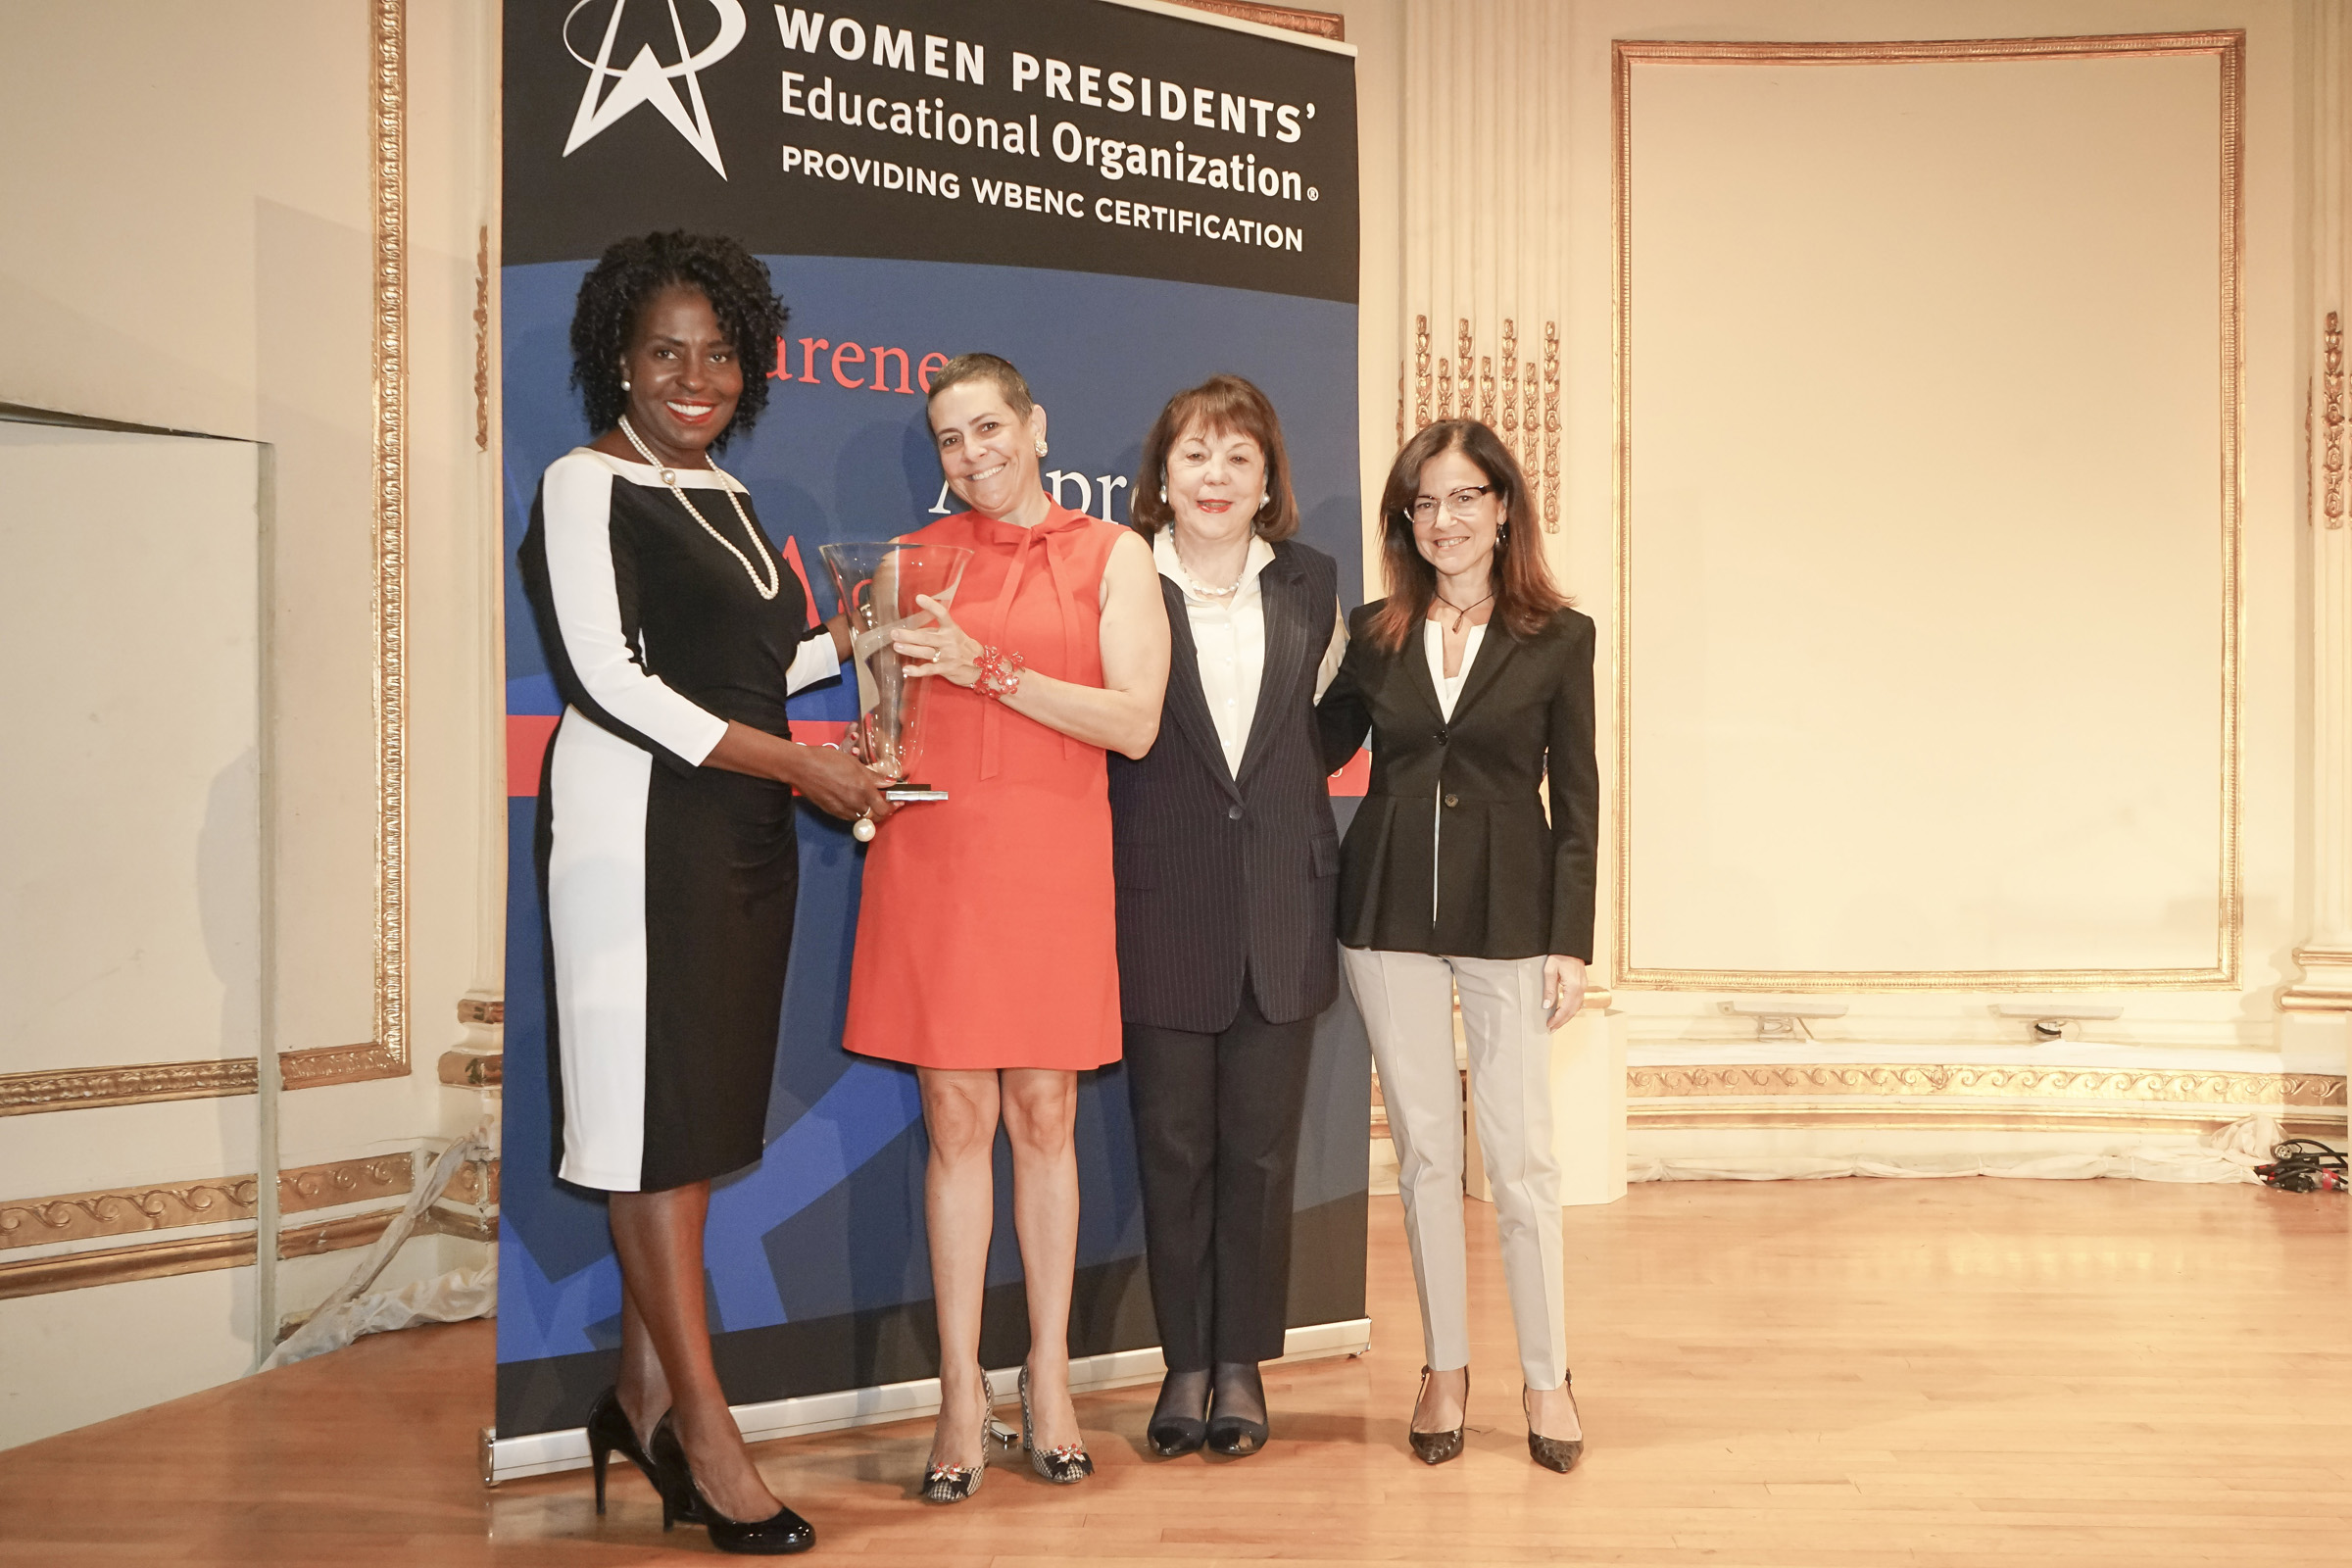 """Alexandra Lebenthal, CEO, Lebenthal & Co, LLC accepting the Corporate Champion Award on behalf of Microsoft Corporation."""" Pictured left to right: Avis Yates Rivers –Vice Chair WPEO Board of Directors and CEO, Technology Concepts Group International, LLC; Alexandra Lebenthal, CEO, Lebenthal & Co, LLC; Dr. Marsha Firestone, President and Founder, WPEO; Susan Feiner, Vice President Enterprise Supply Management, Capital One"""